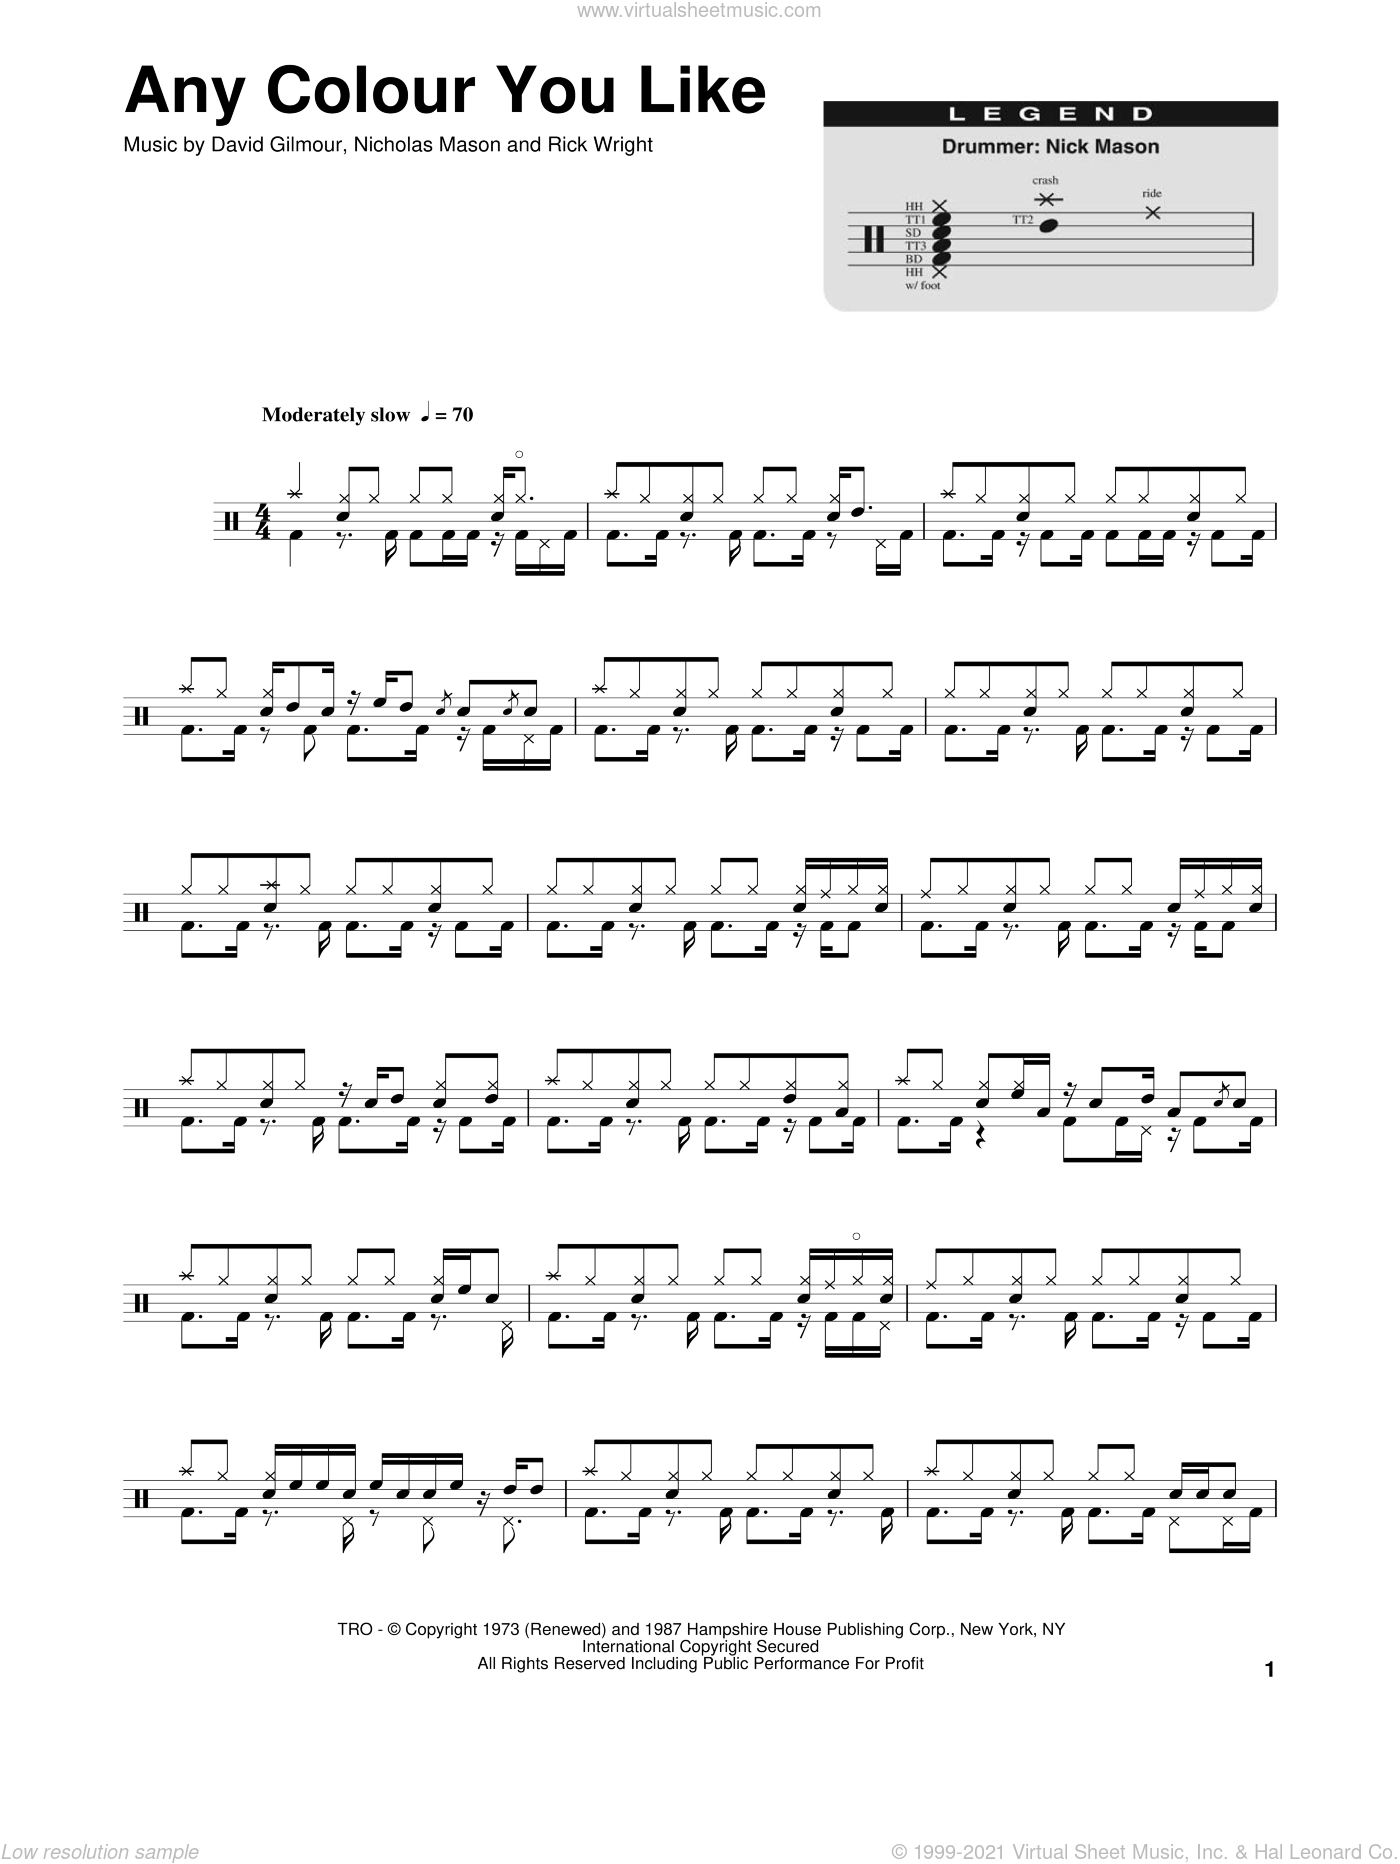 Floyd - Any Colour You Like sheet music for drums [PDF]